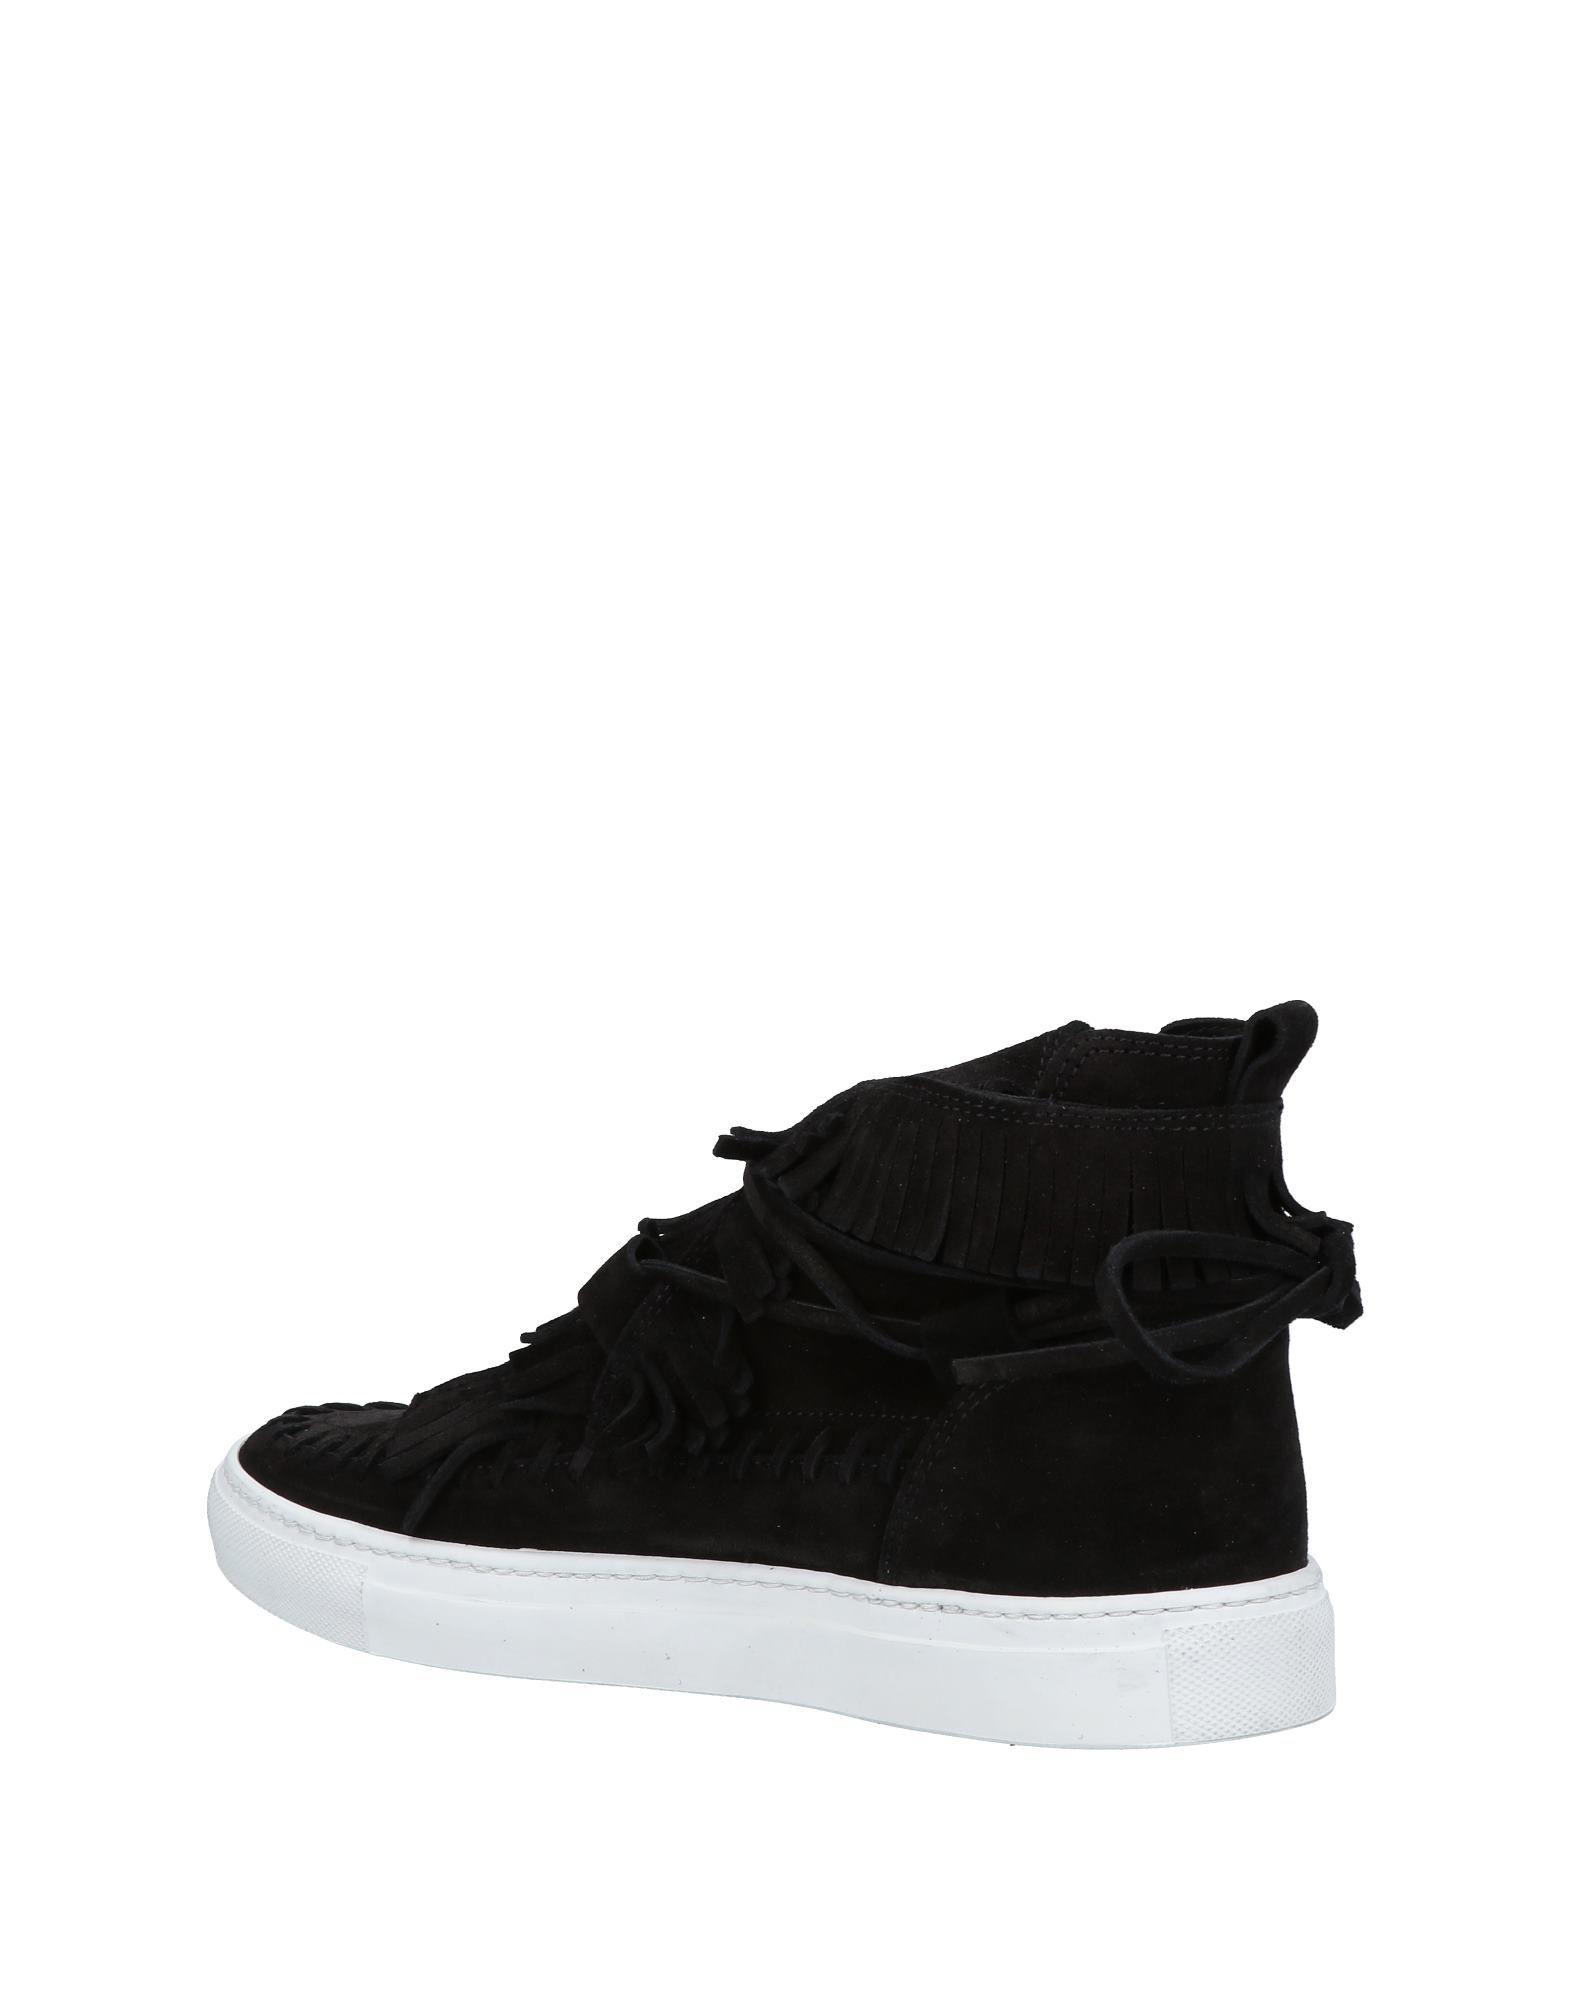 4a4053f1160 Casadei High-tops & Sneakers in Black for Men - Lyst